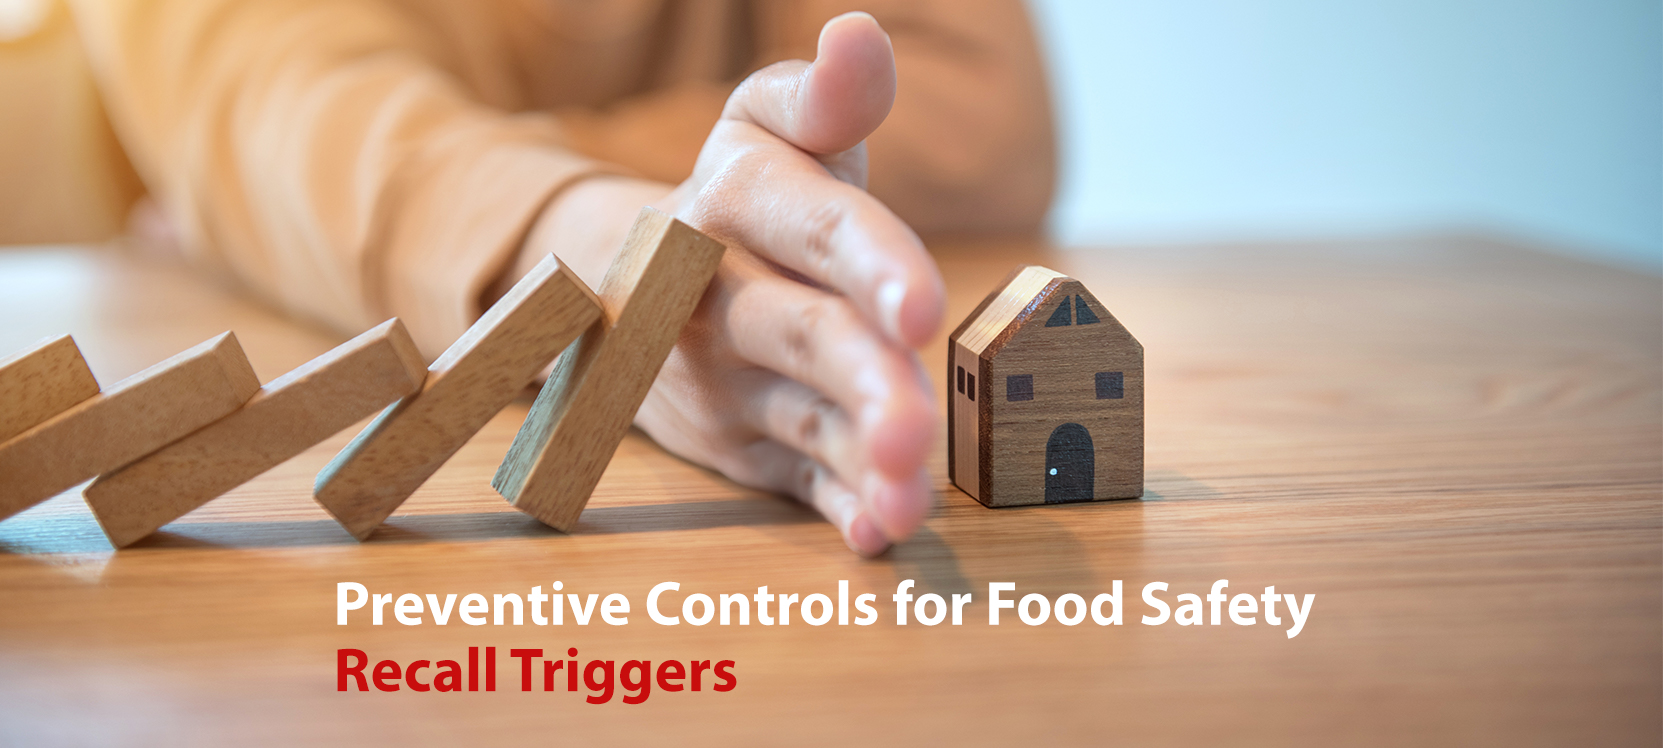 Preventive Controls for Food Safety